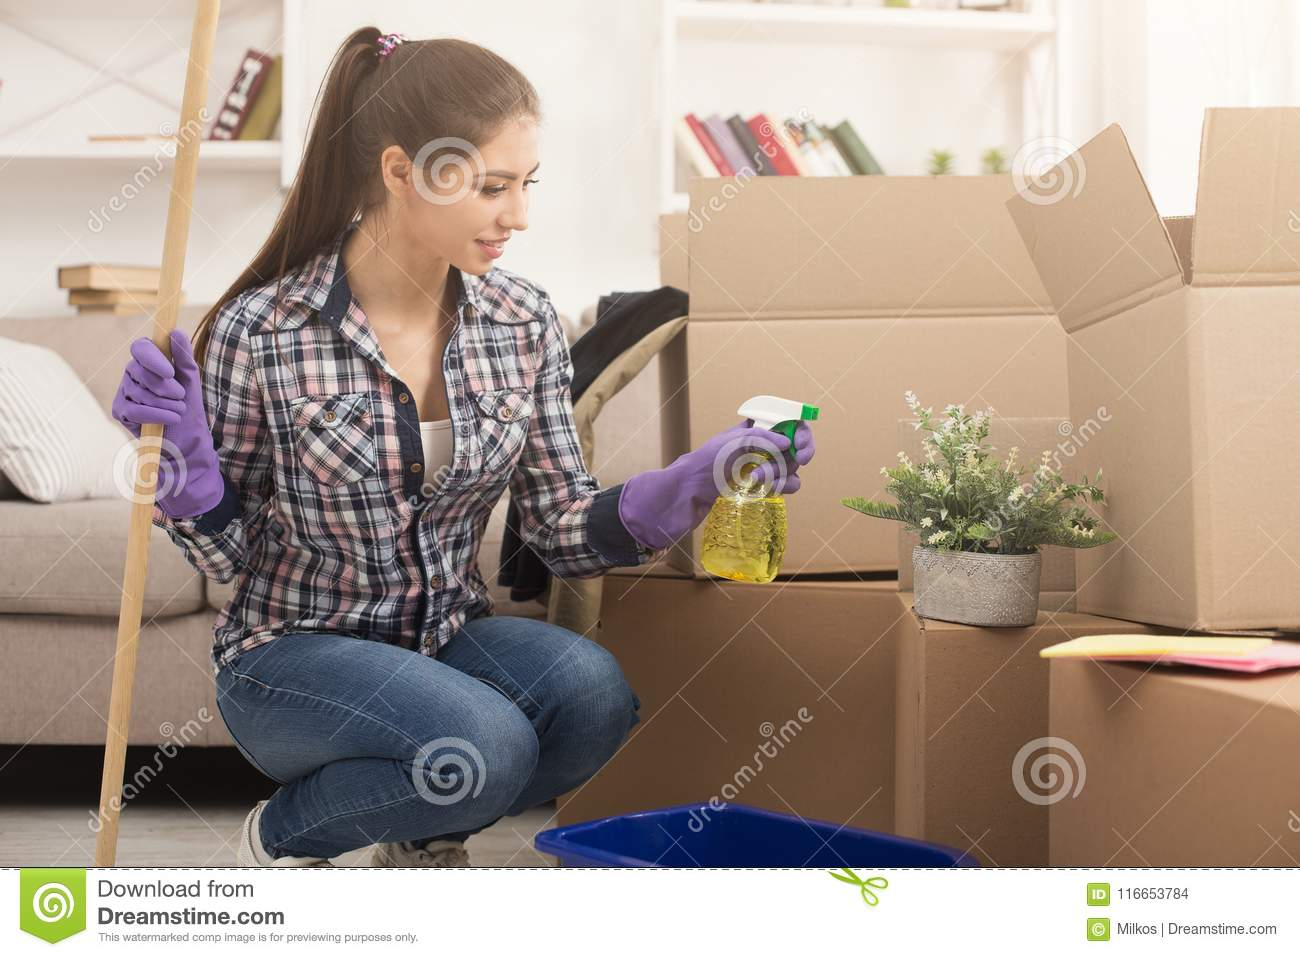 Young Woman Sprinkles Houseplant While Cleaning New Apartment New Home Spring Cleaning Copy Space